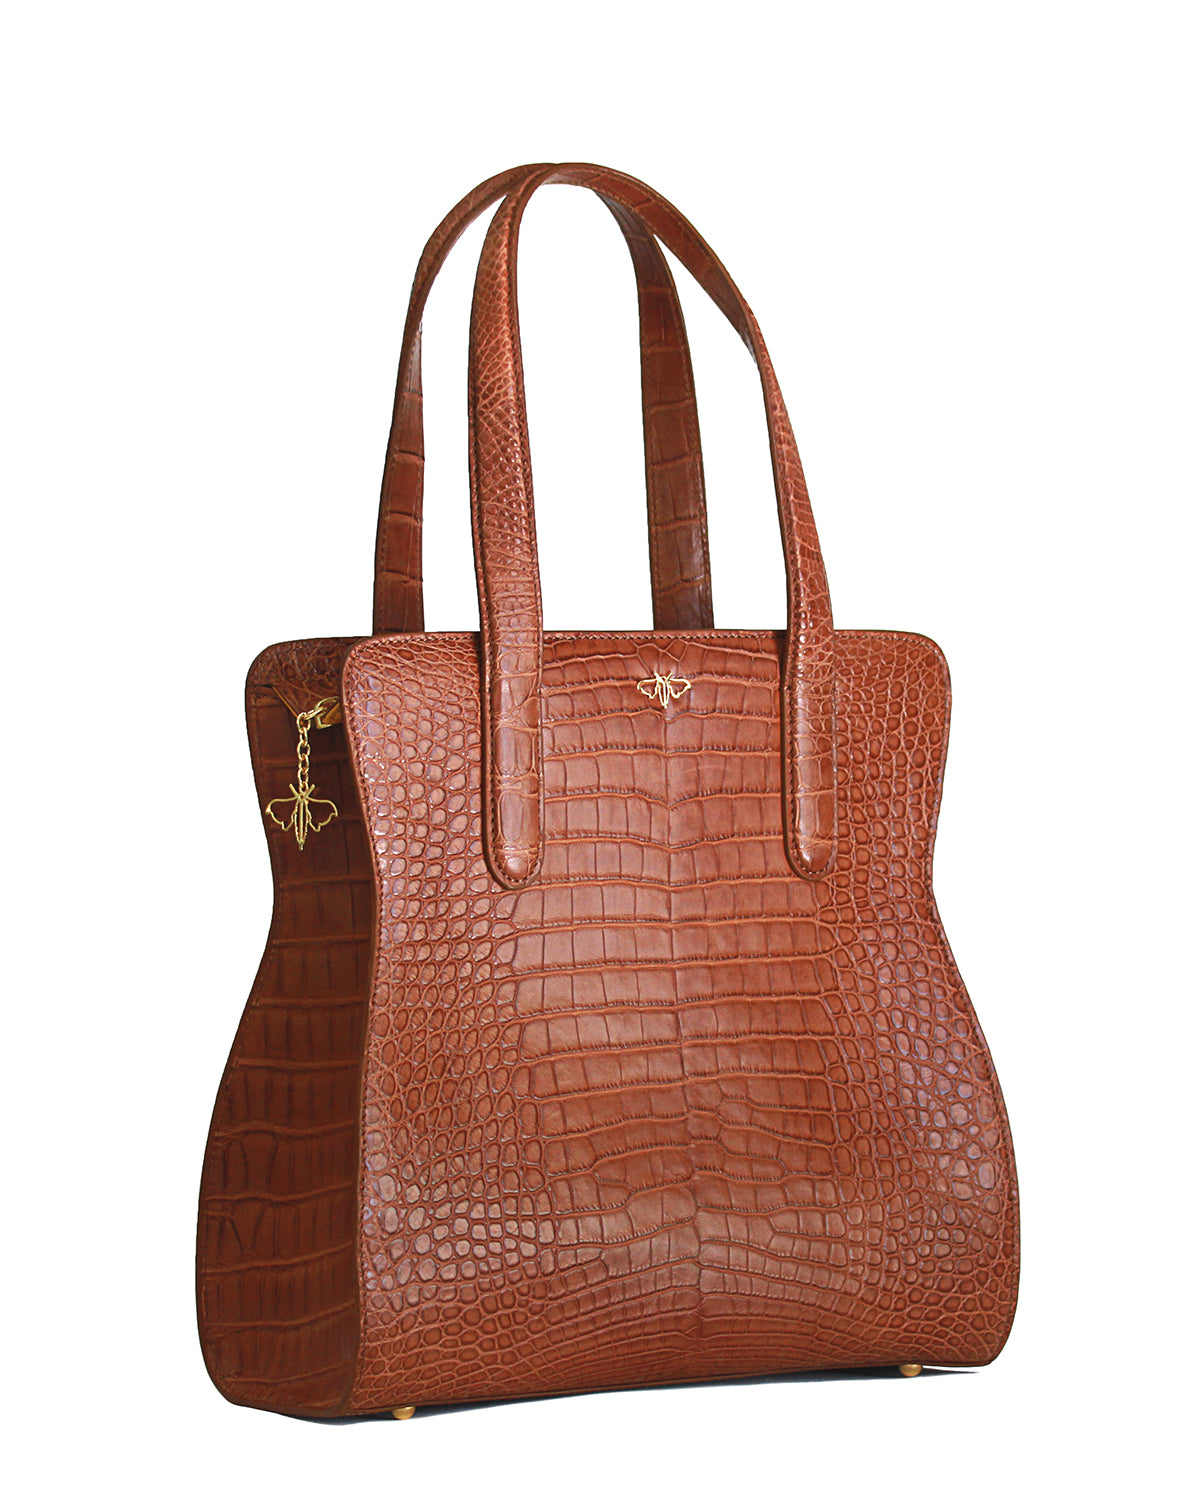 Yara Bashoor Adam Tote Handbag Brown Cava Yellow Gold Genuine American Alligator Angle View